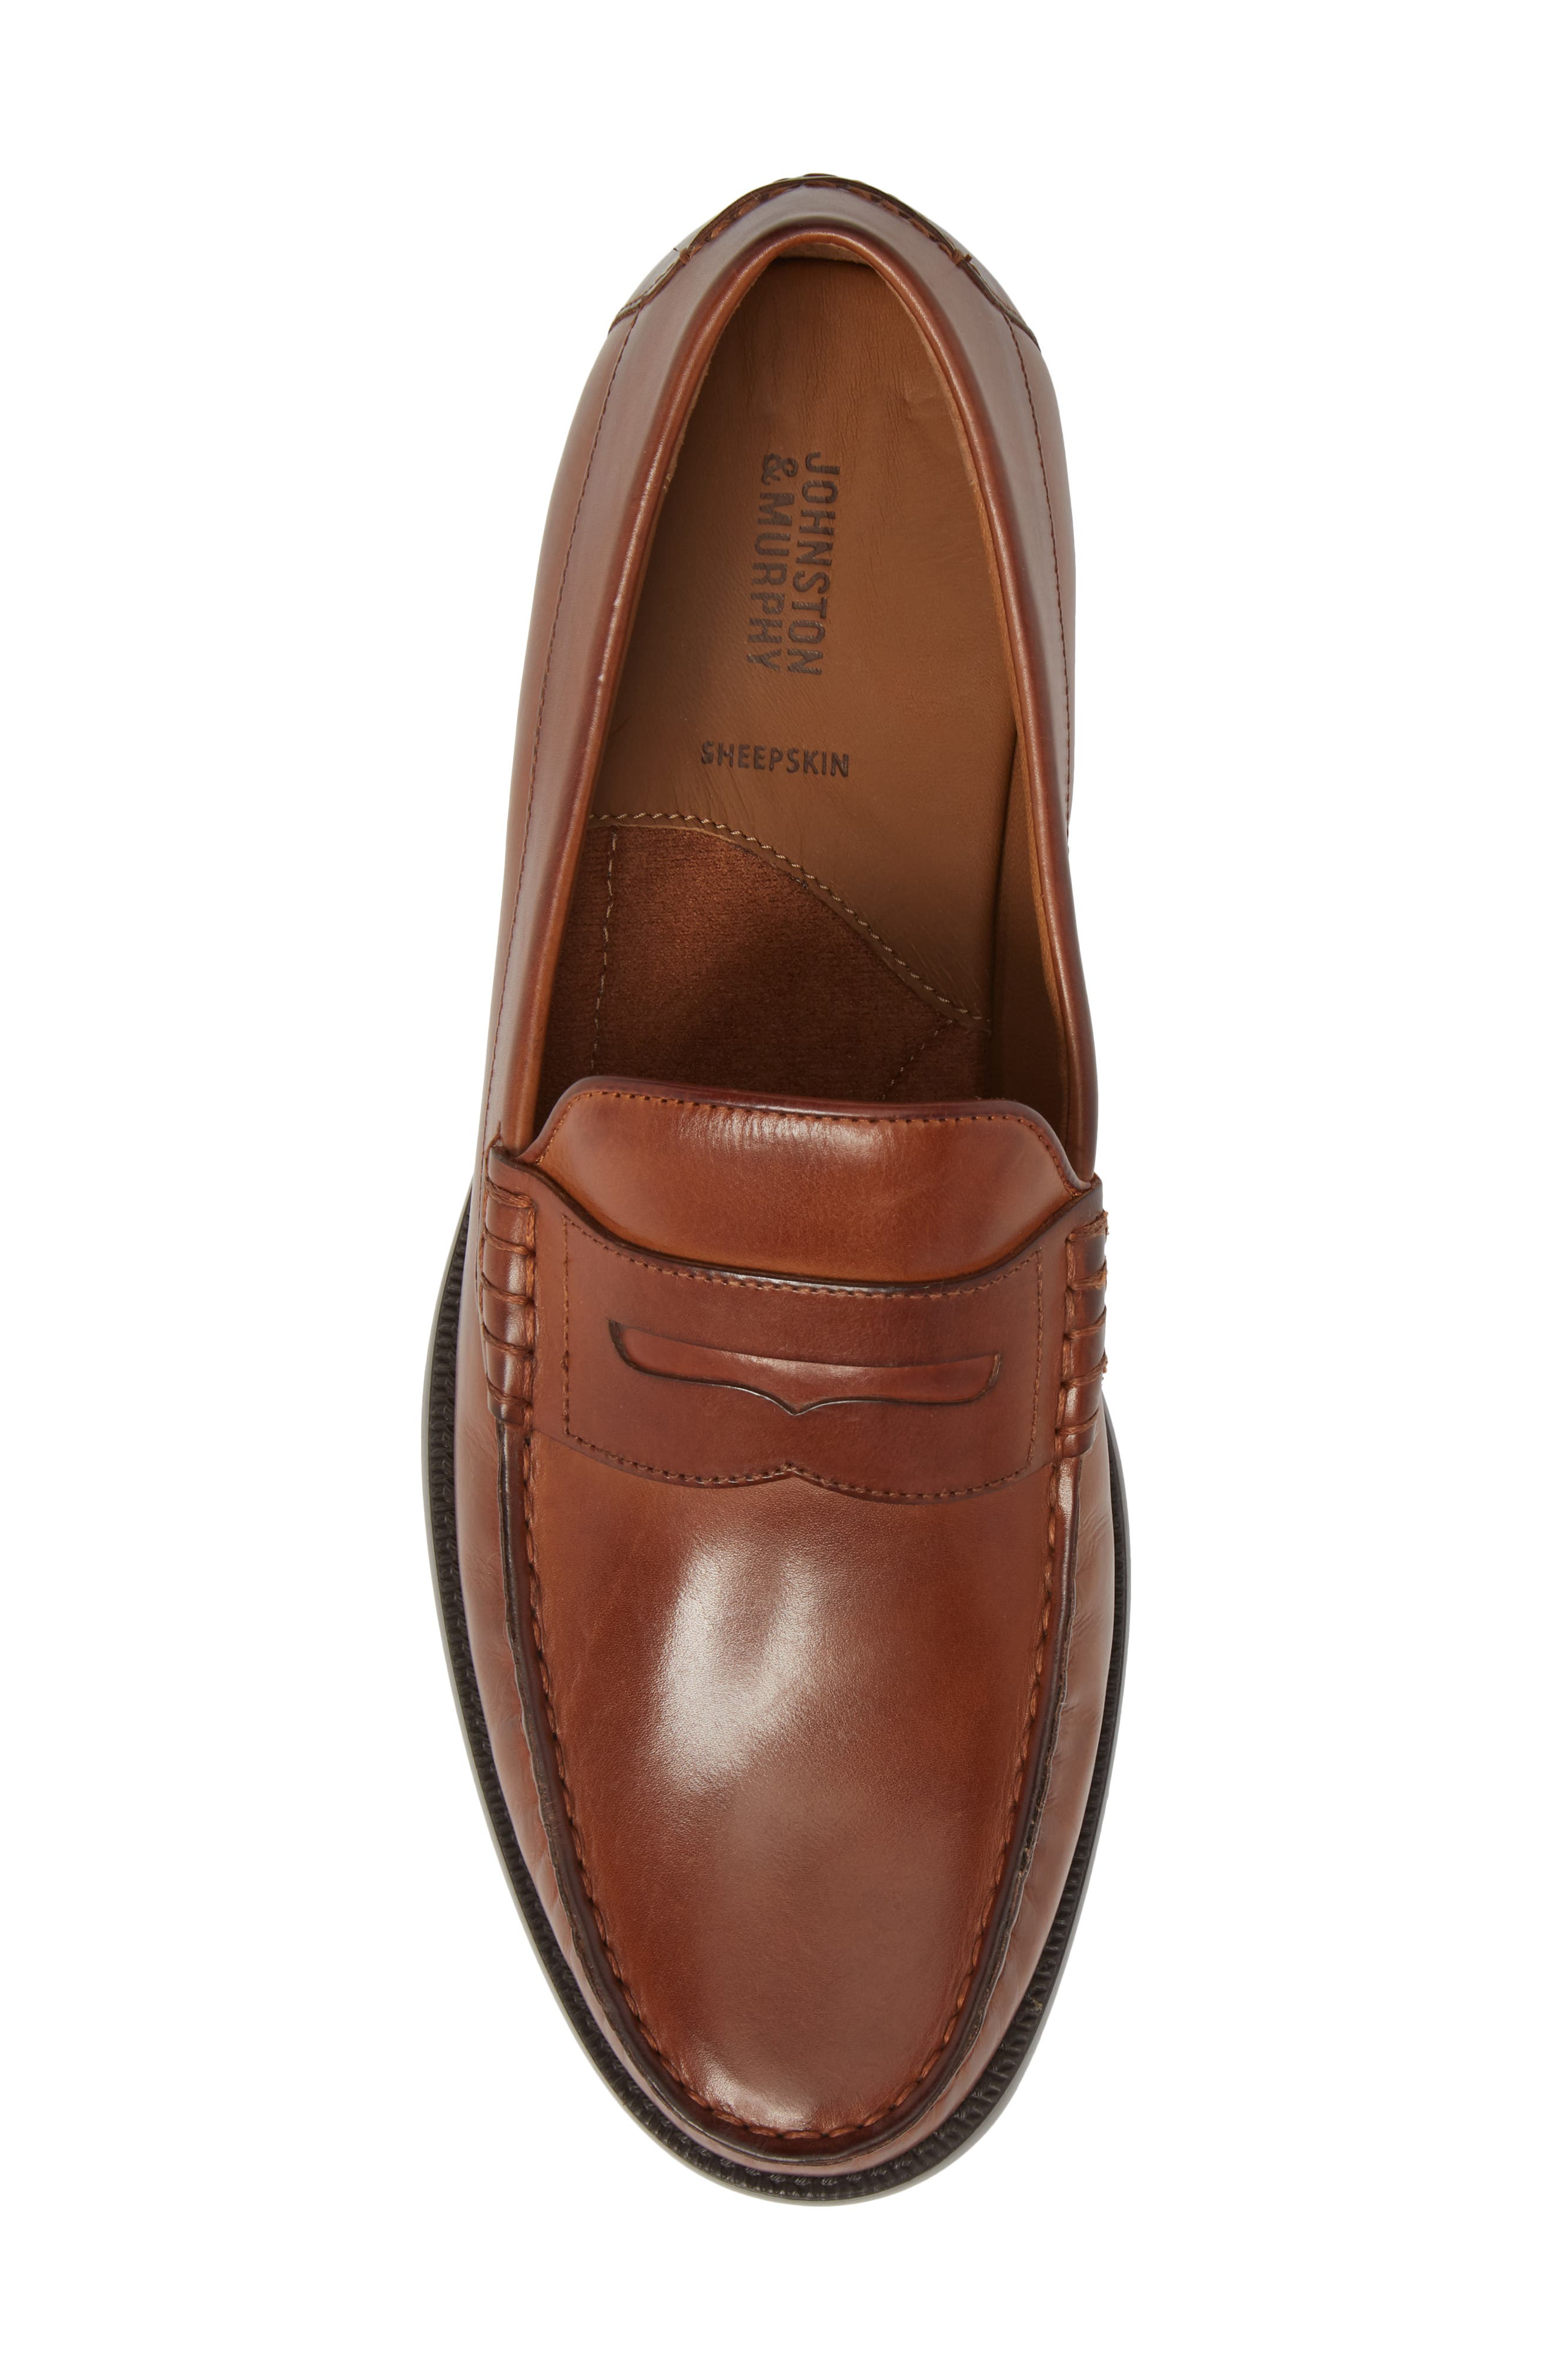 Chadwell Penny Loafer,                             Alternate thumbnail 5, color,                             Tan Leather